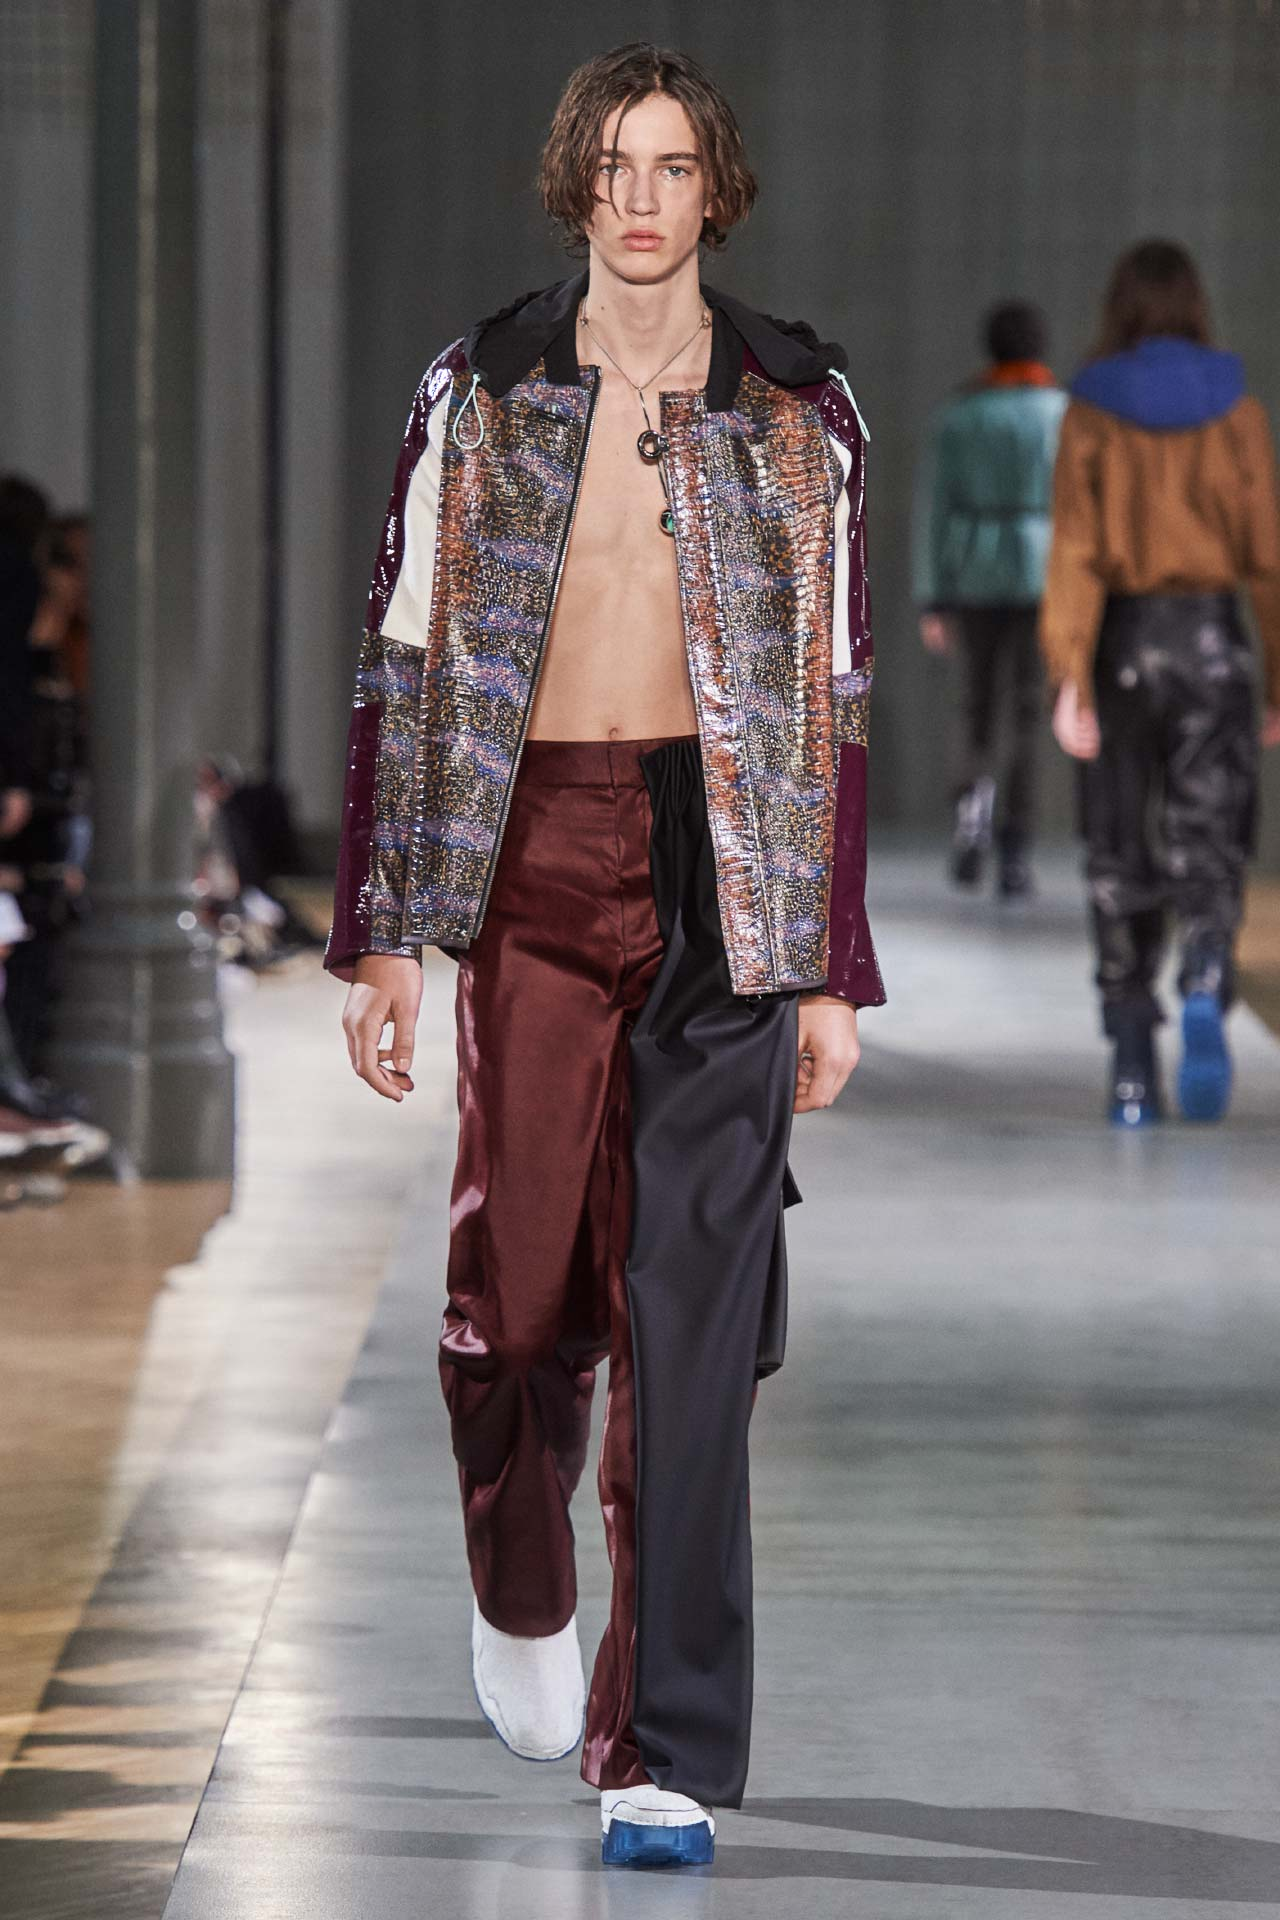 Look Fall/Winter 2019, image 11